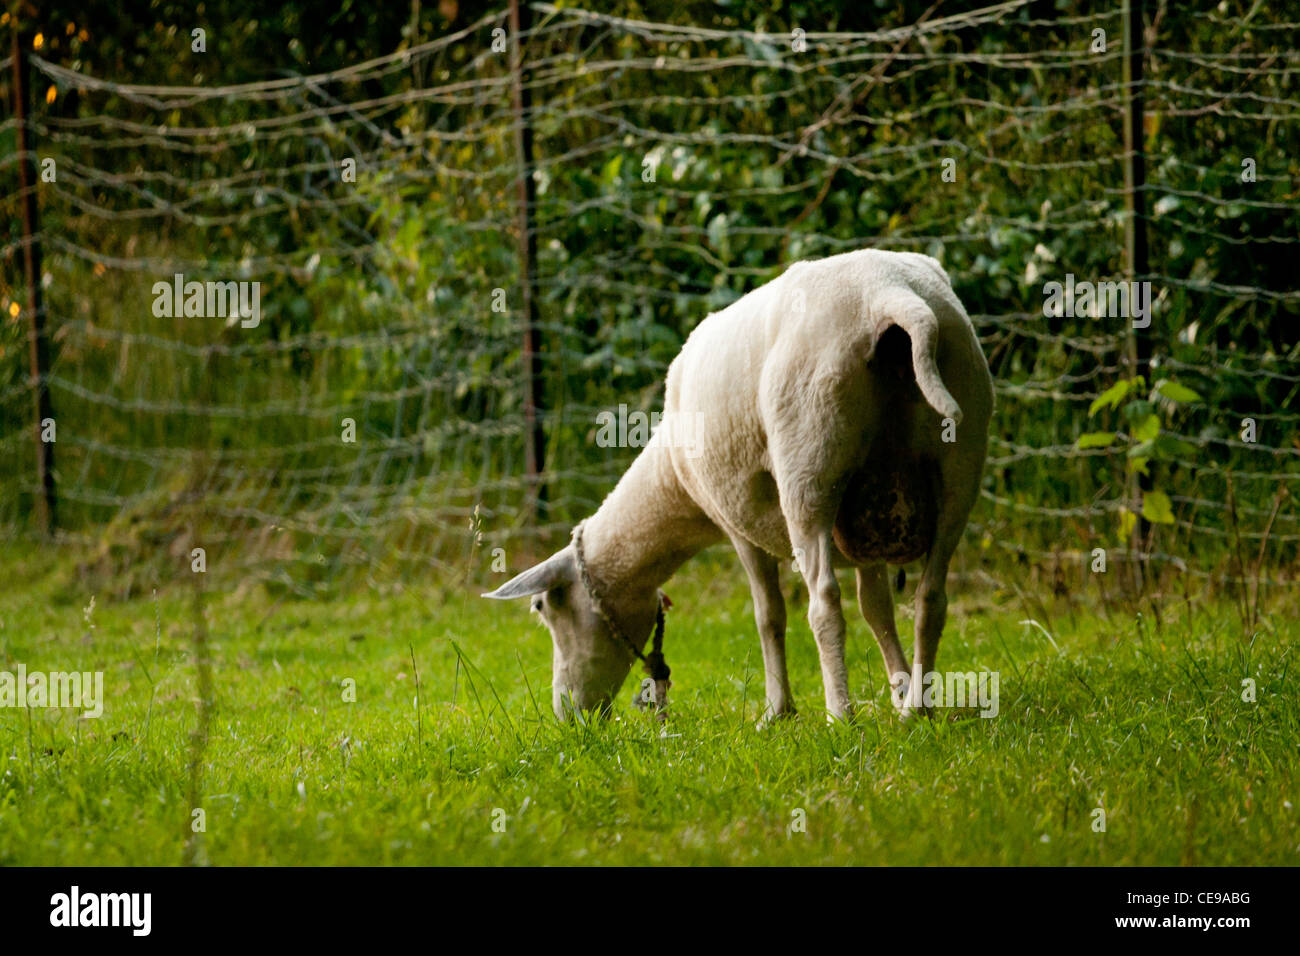 Sheep grassing in green field. - Stock Image